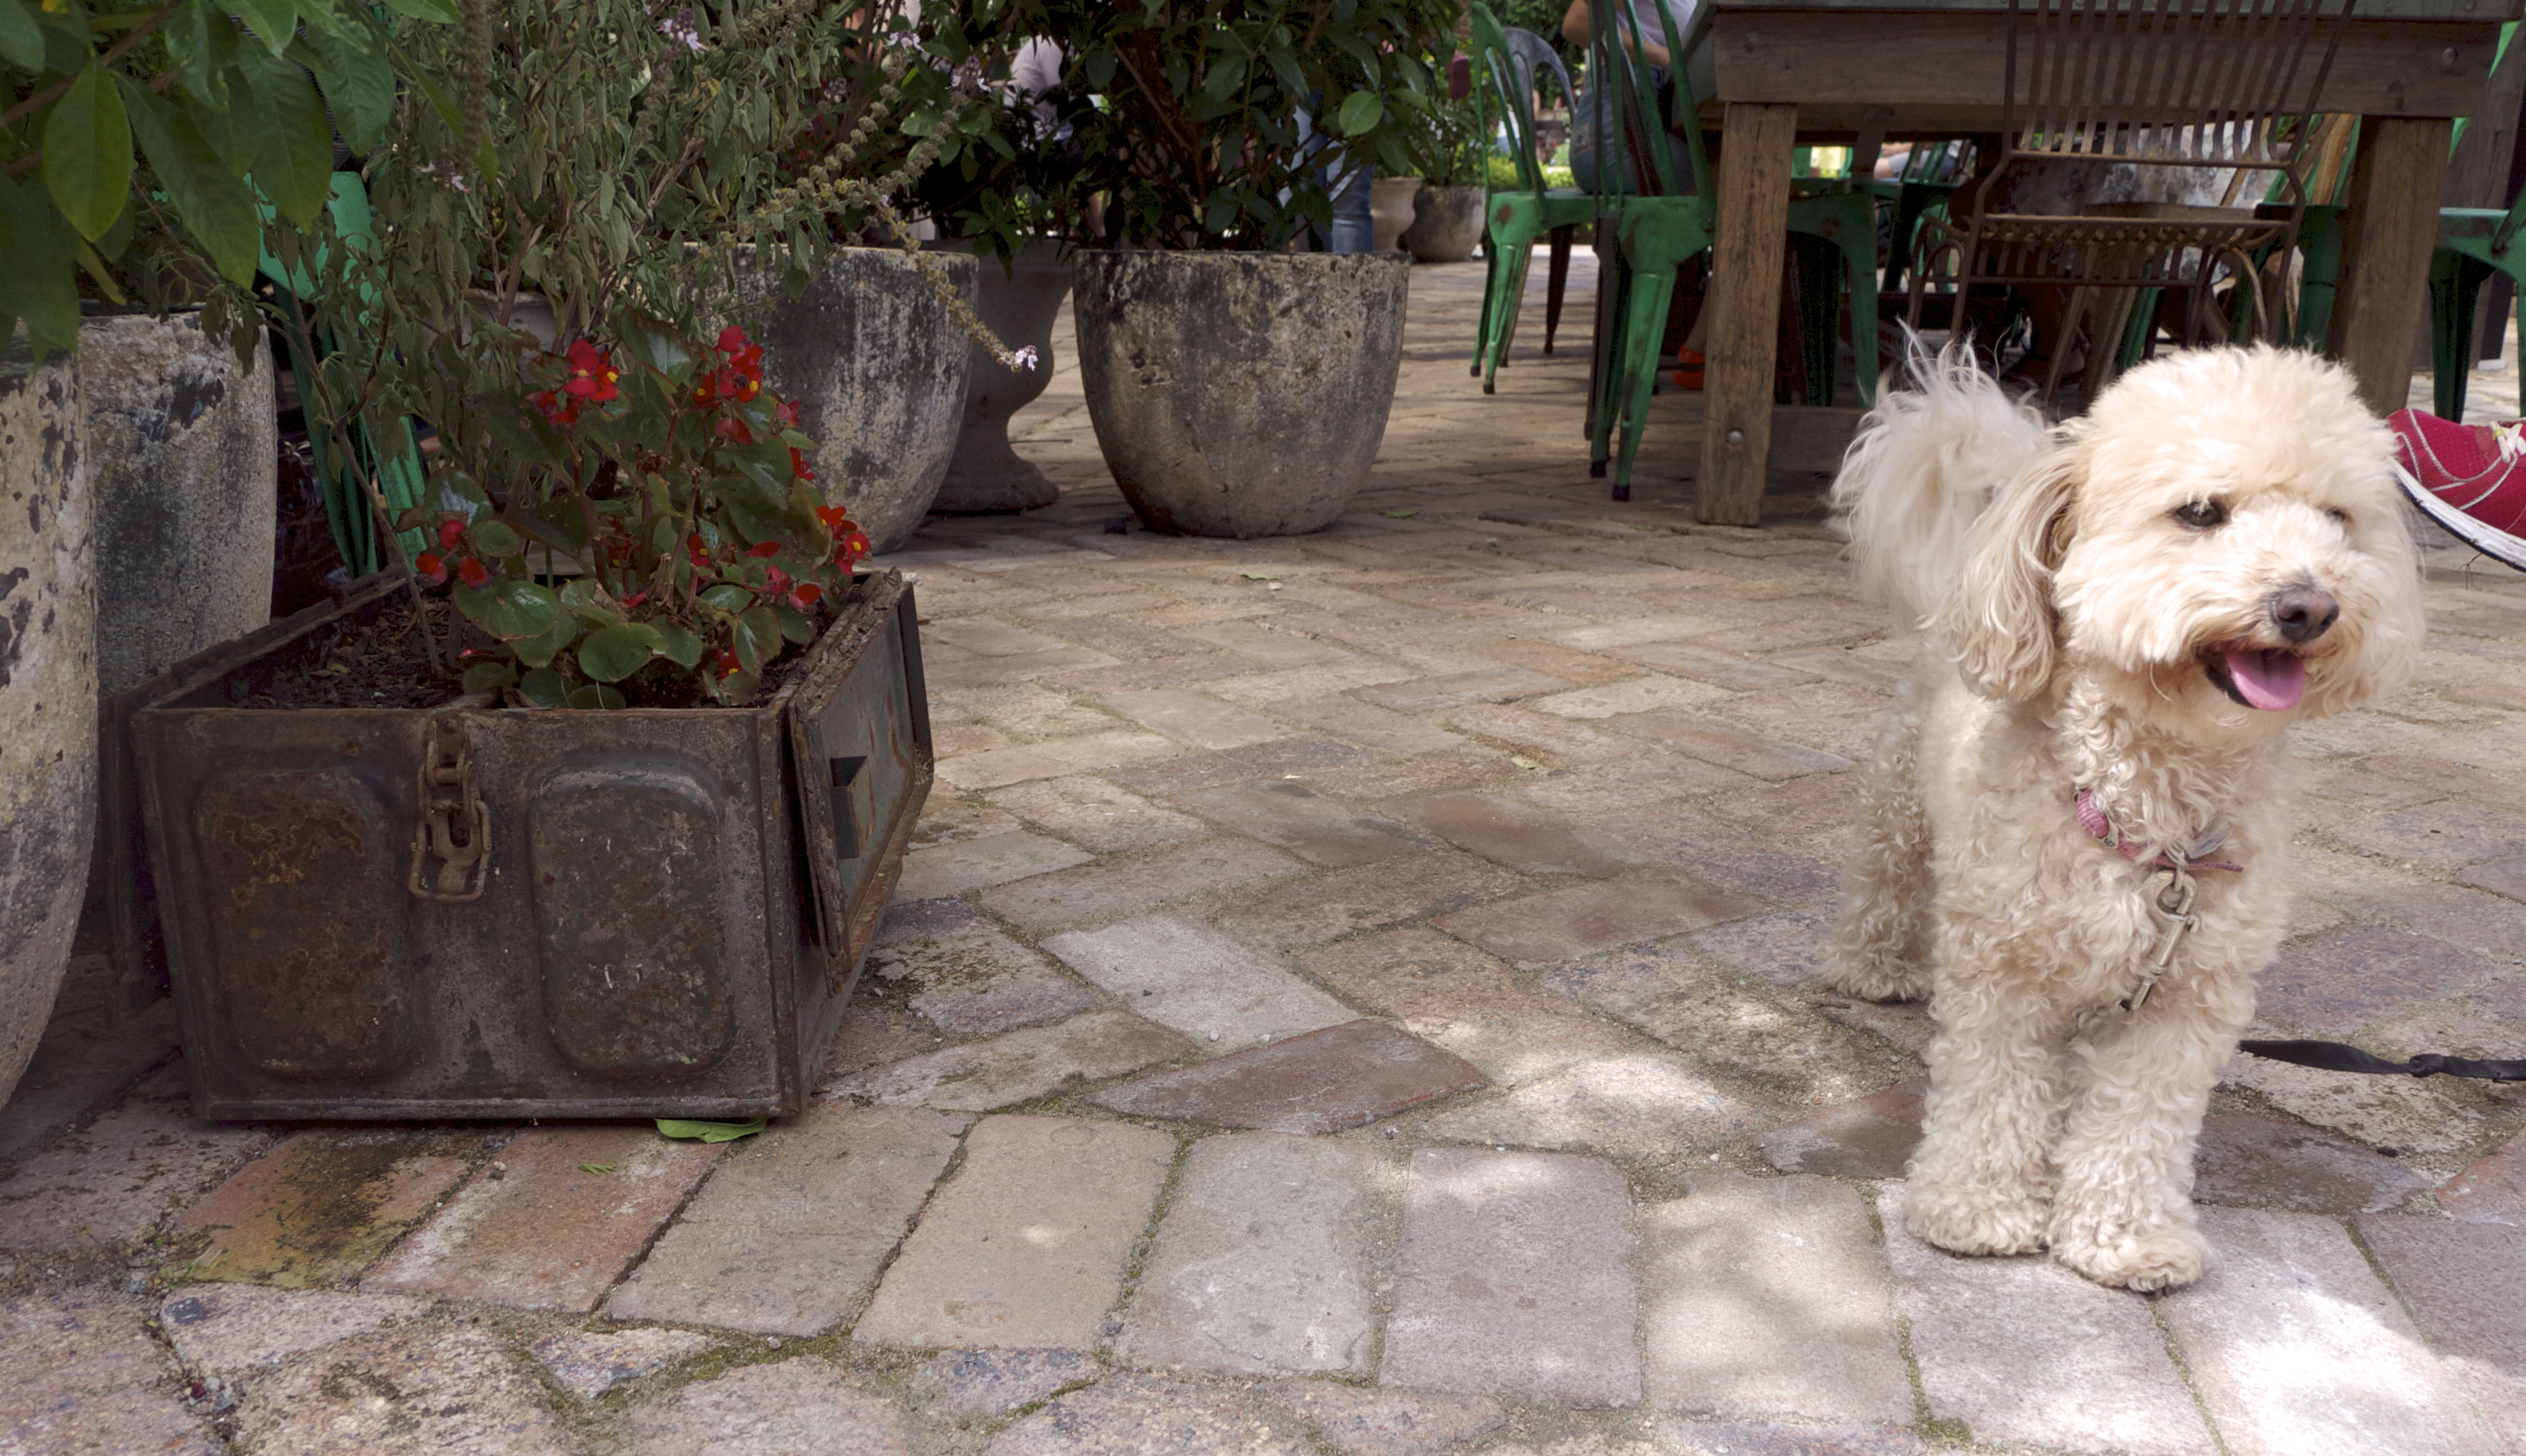 The Grounds of Alexandria - Dog and Rusted Planter Box